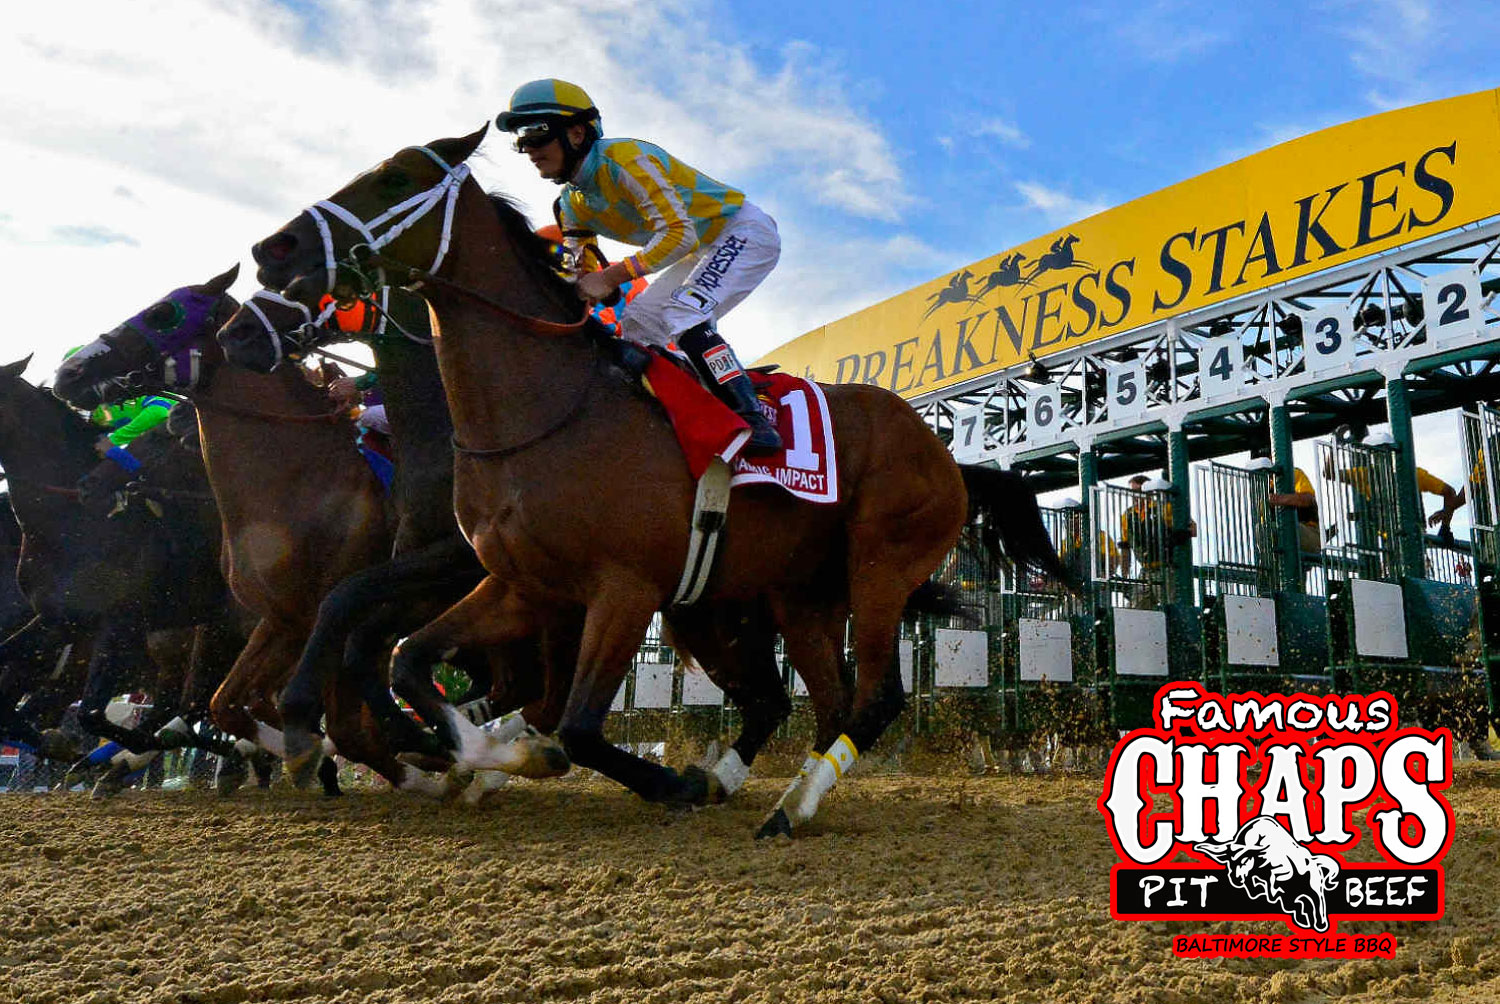 Enter the Chaps Preakness Contest & Win a Chaps Party Platter!